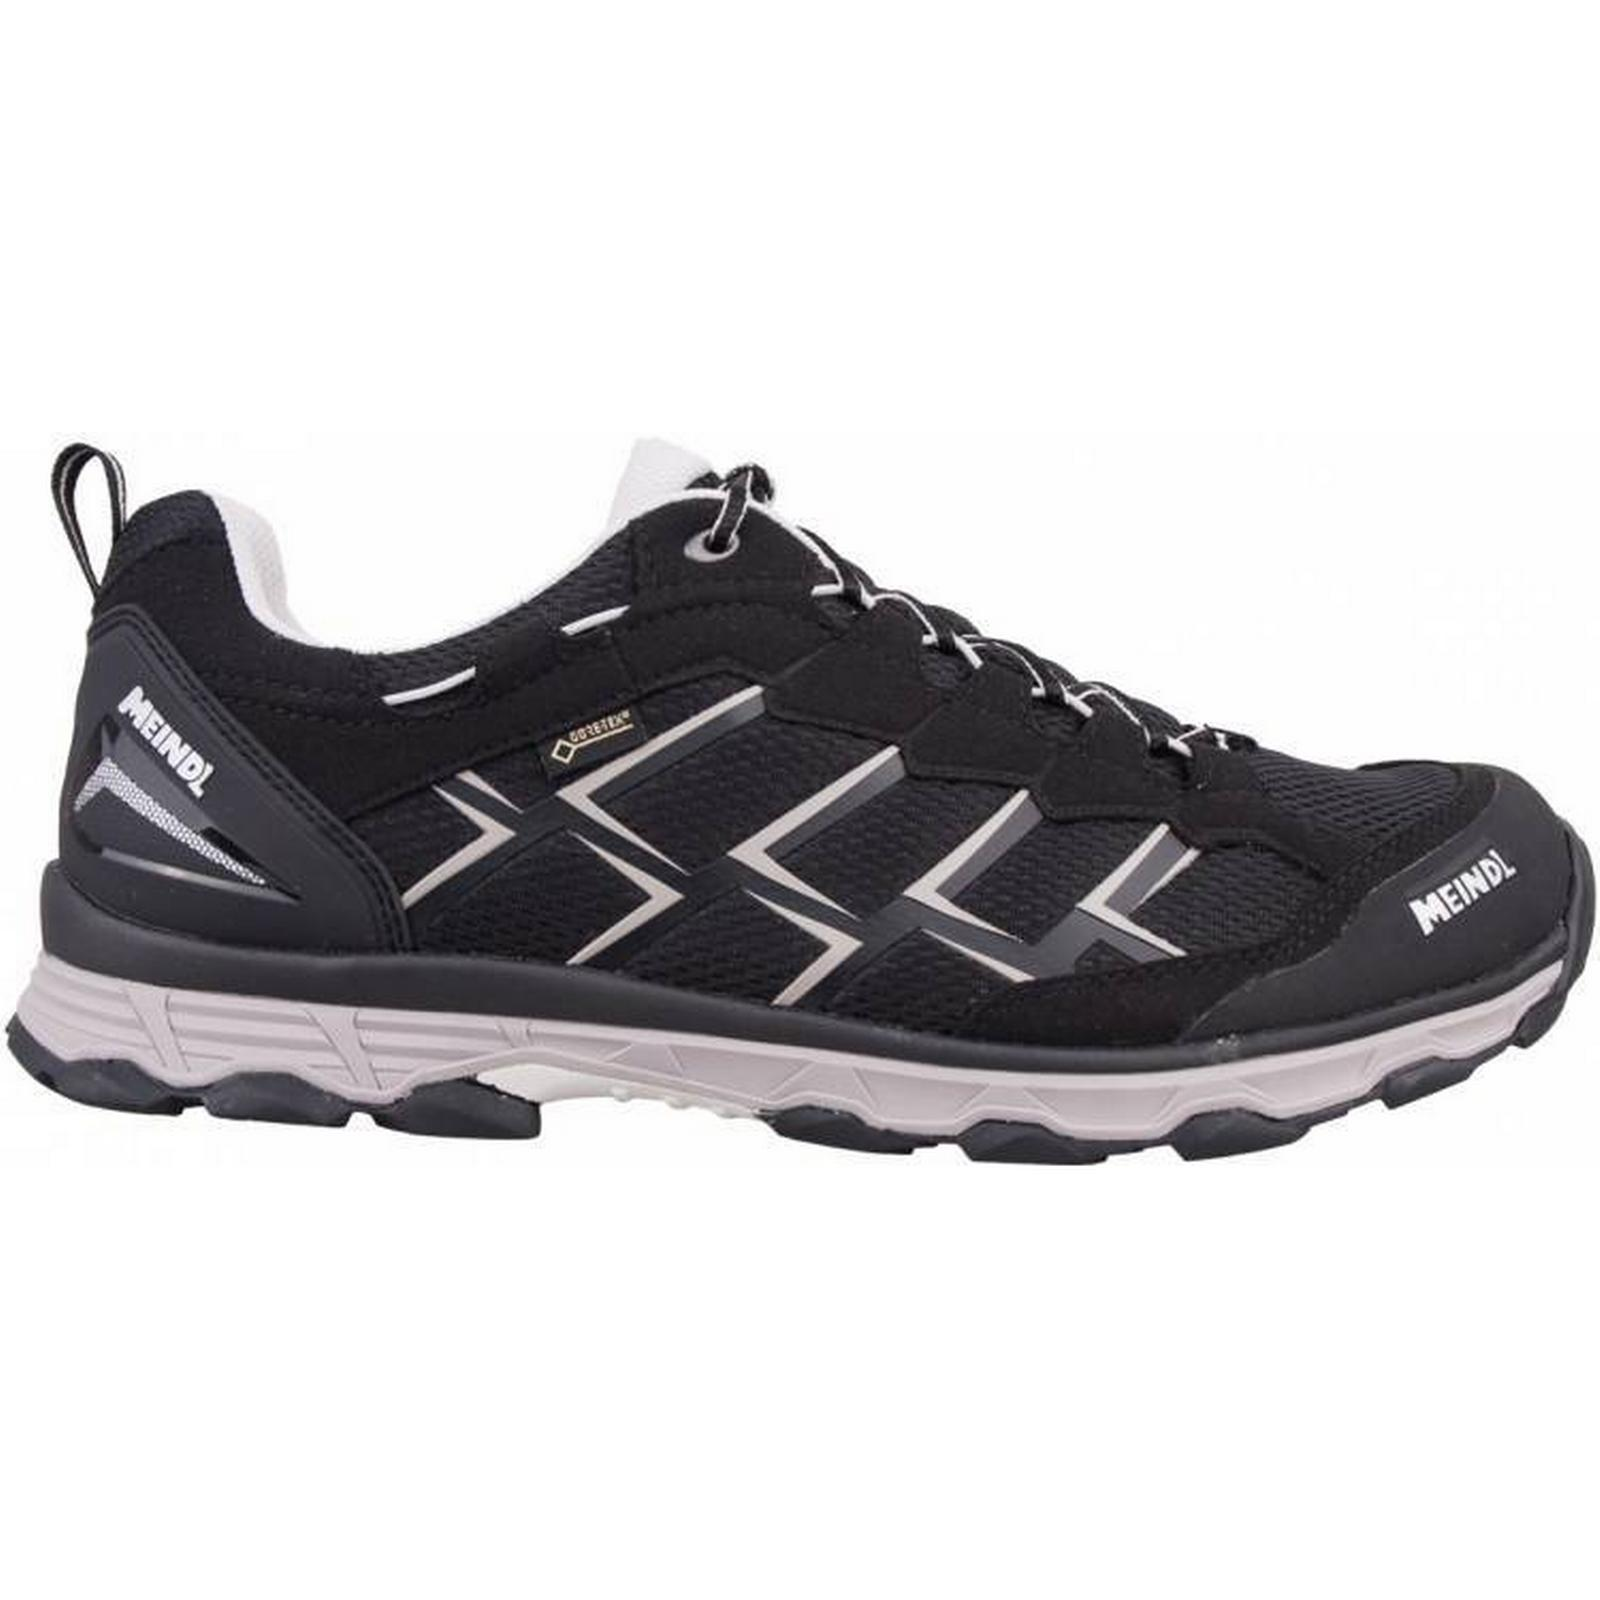 Man's/Woman's:Meindl Activo in GTX (Herren): Hot sale in Activo season 4b634c